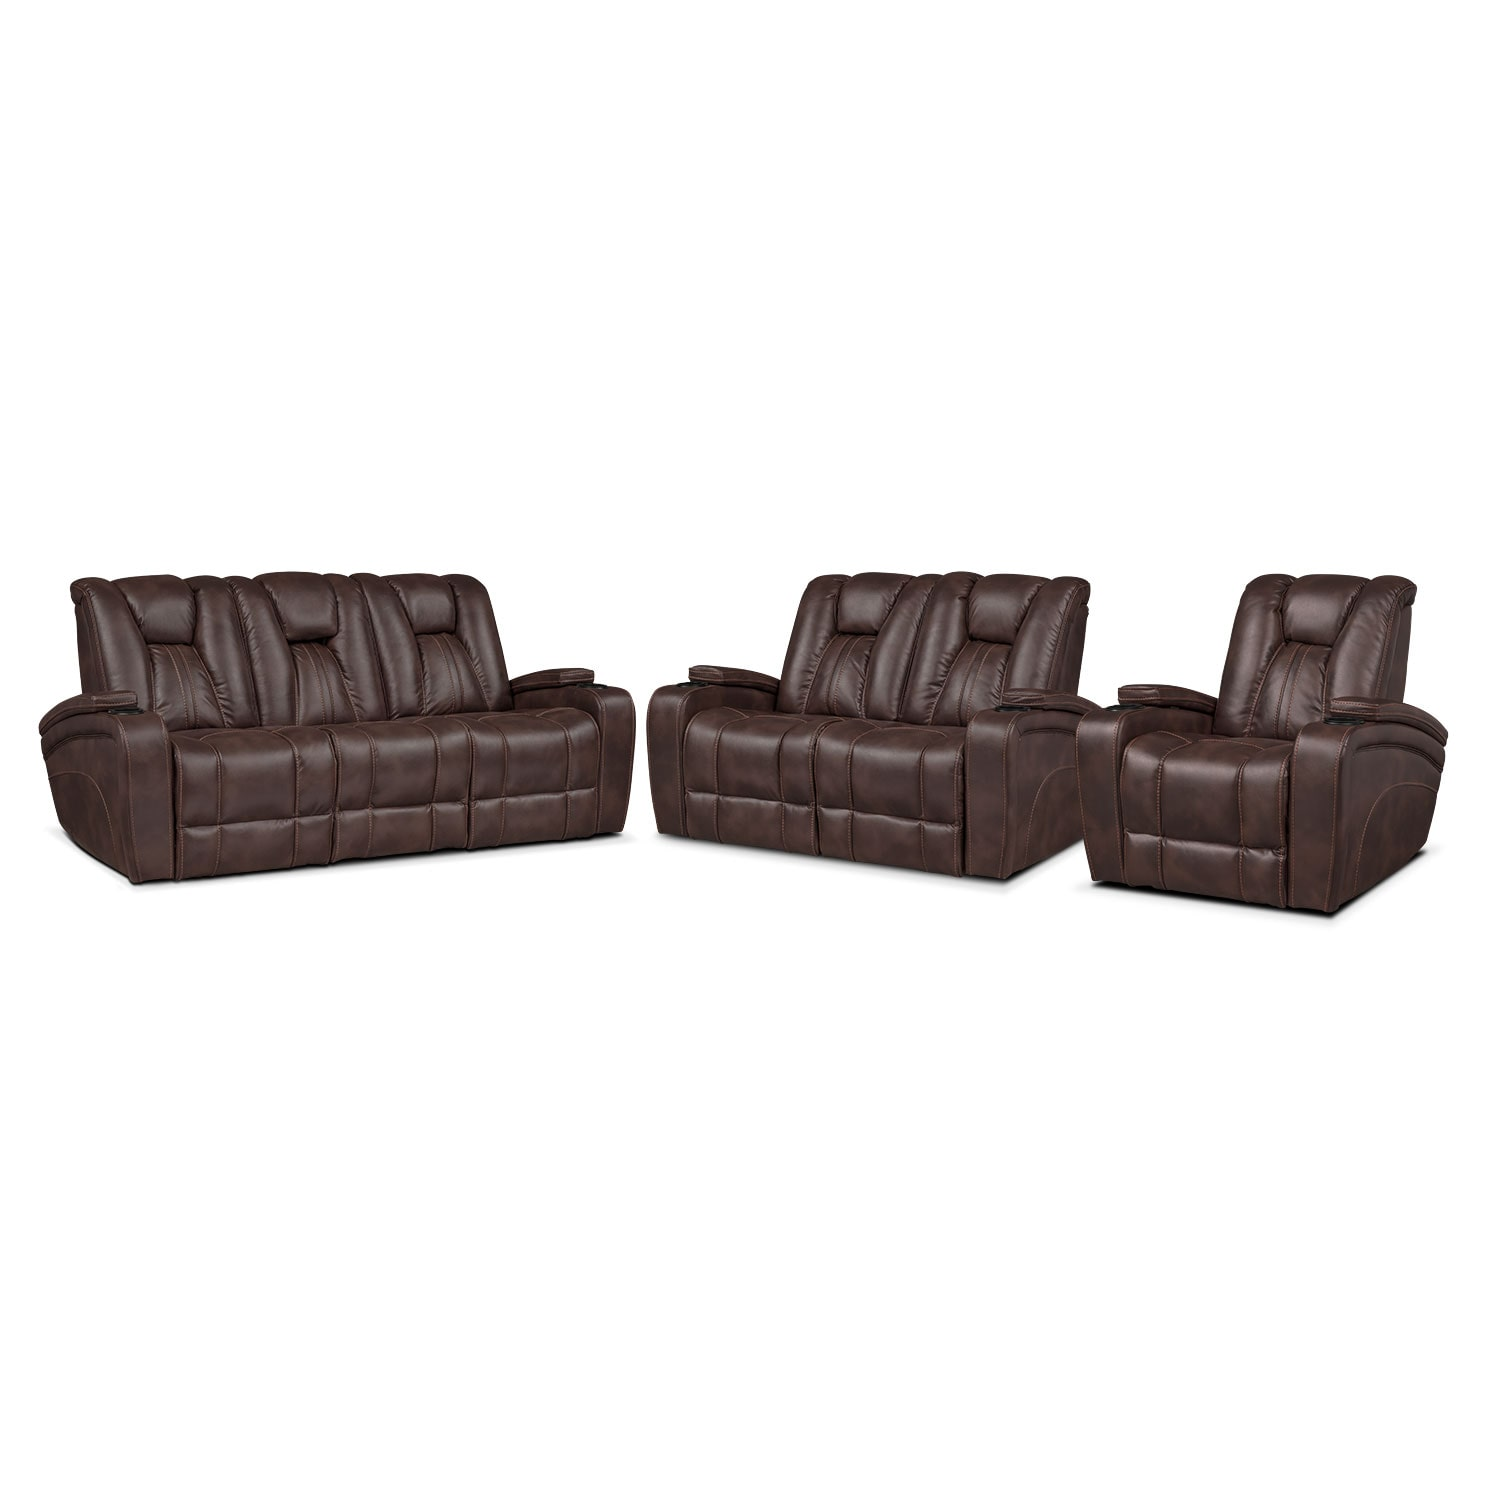 Living Room Furniture - Pulsar Power Reclining Sofa, Power Reclining Loveseat and Power Recliner Set - Brown